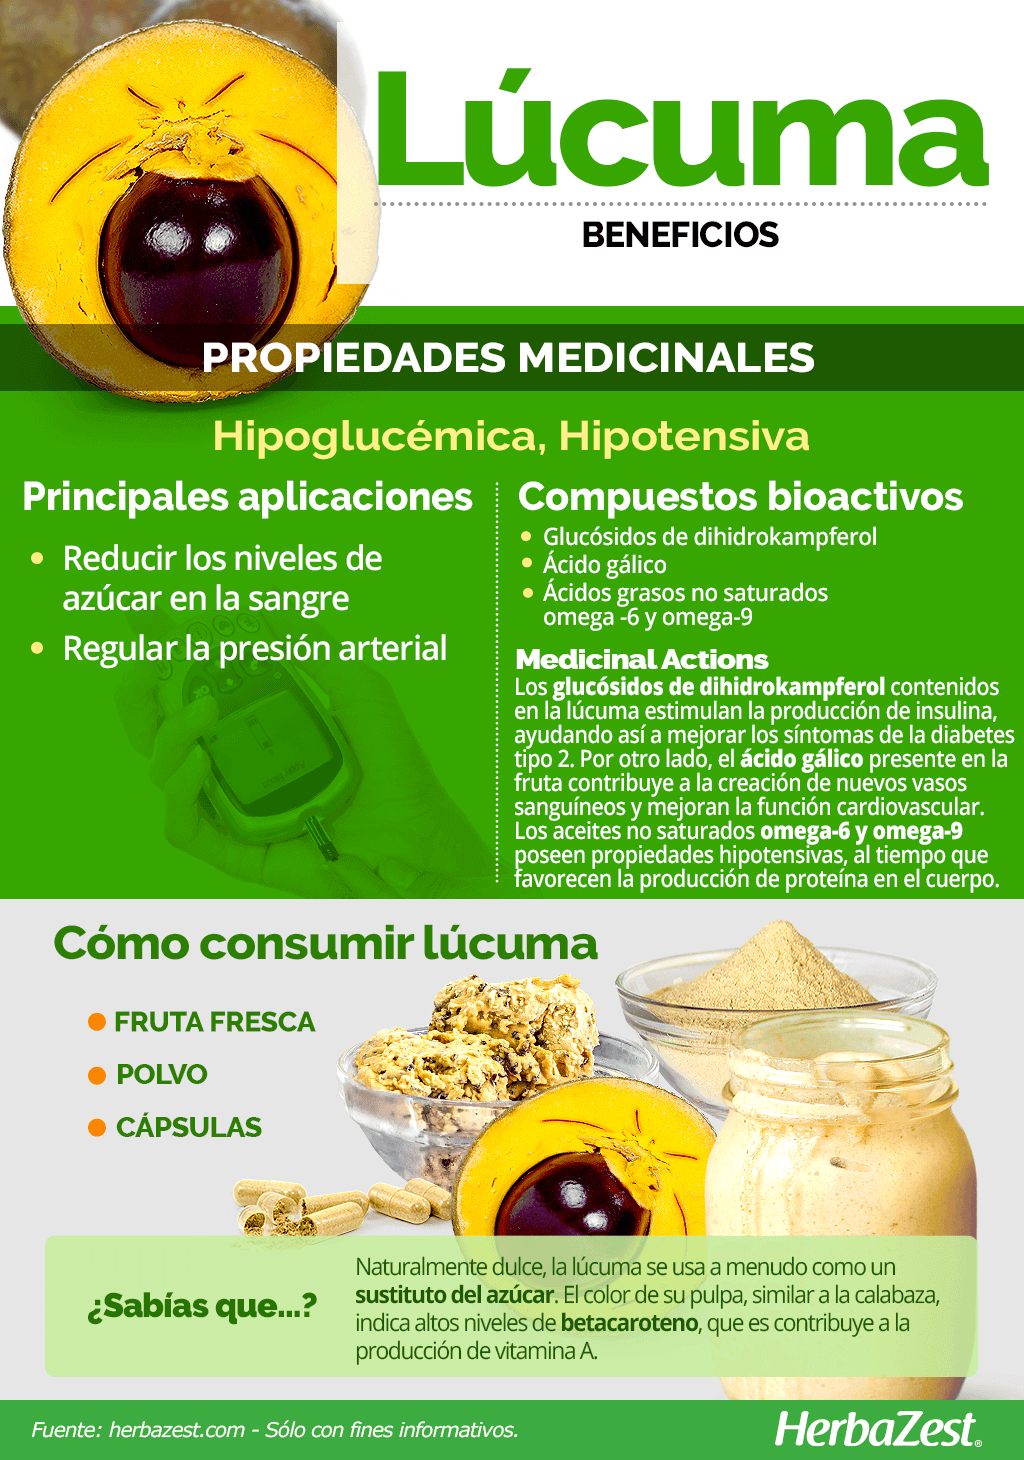 Beneficios de la lúcuma